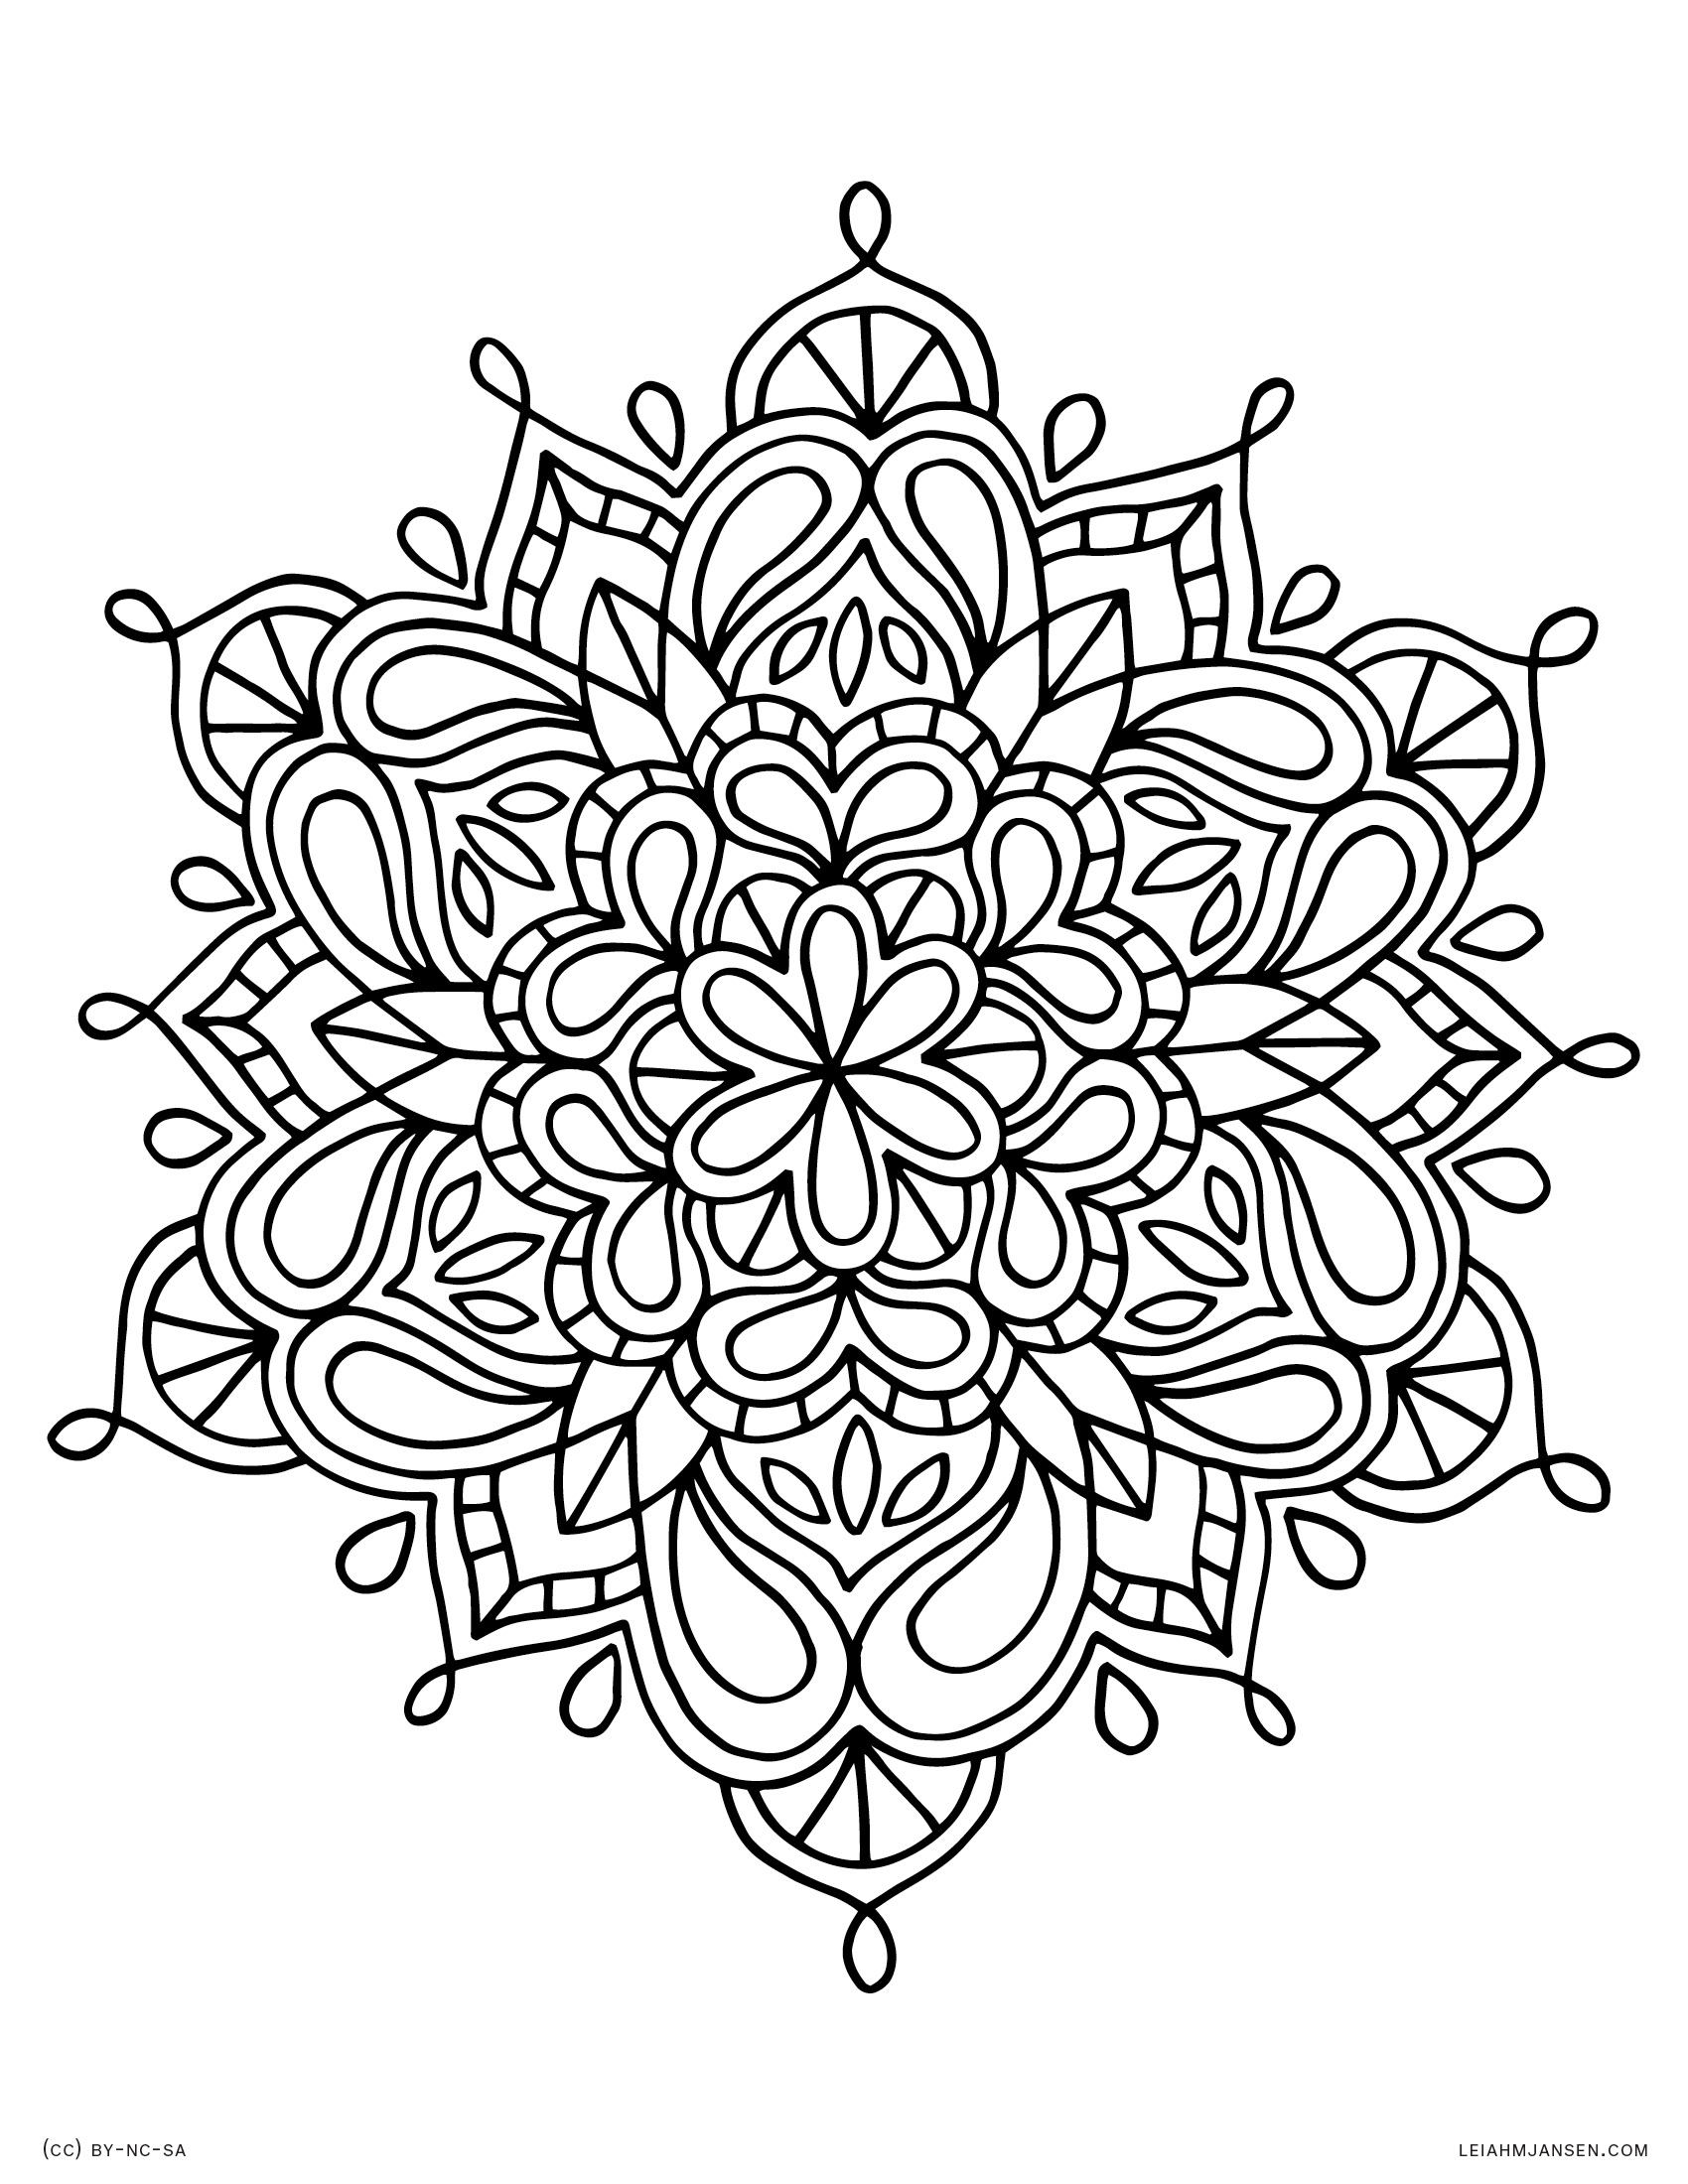 Printable  Pictures Colouring Pages | Coloring Pages